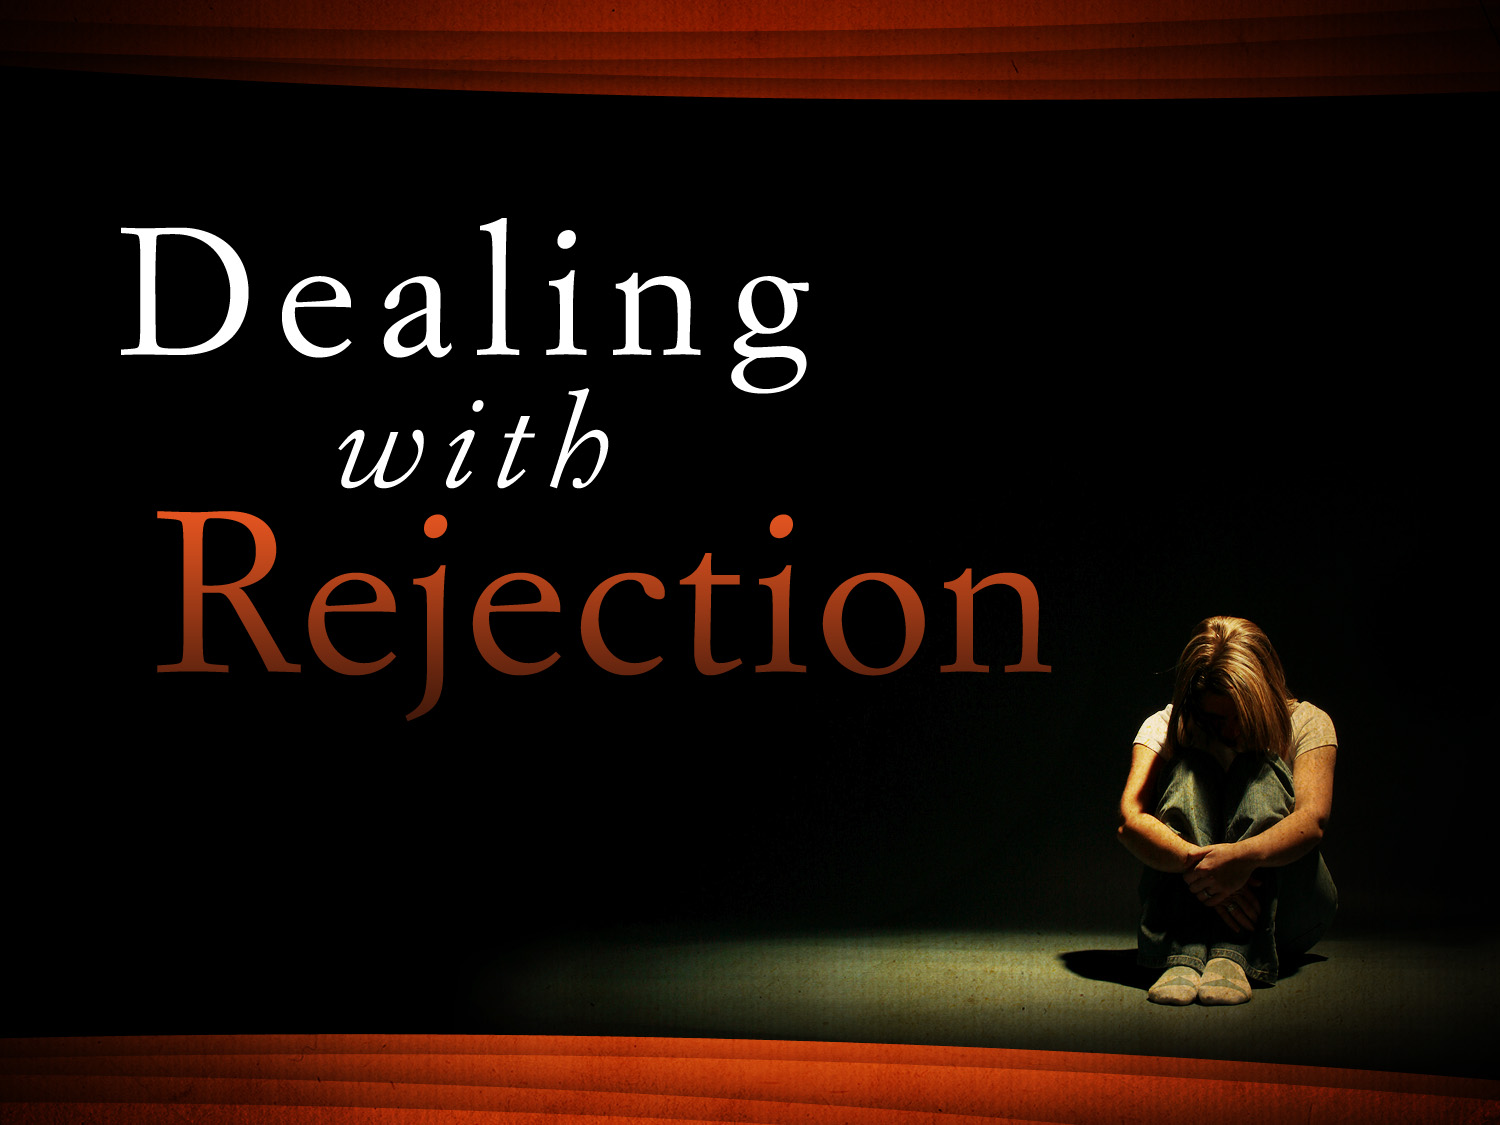 The bondage of fear and rejection